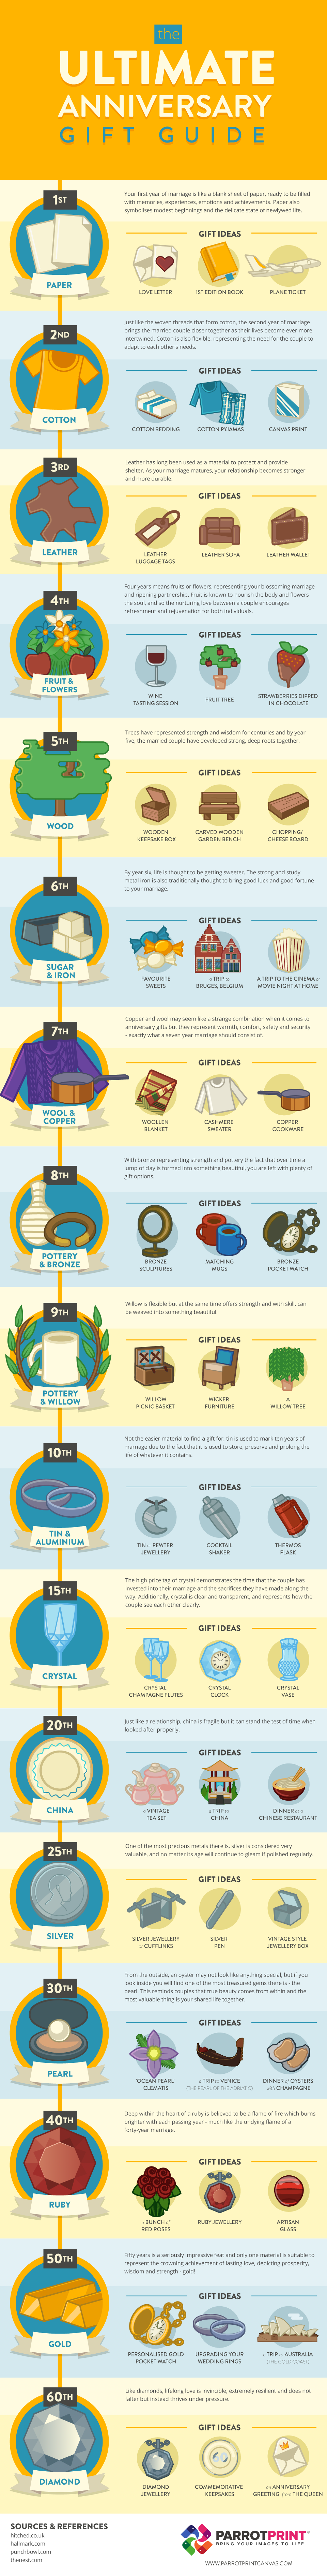 The Ultimate Anniversary Gift Guide #infographic #Wedding Gifts